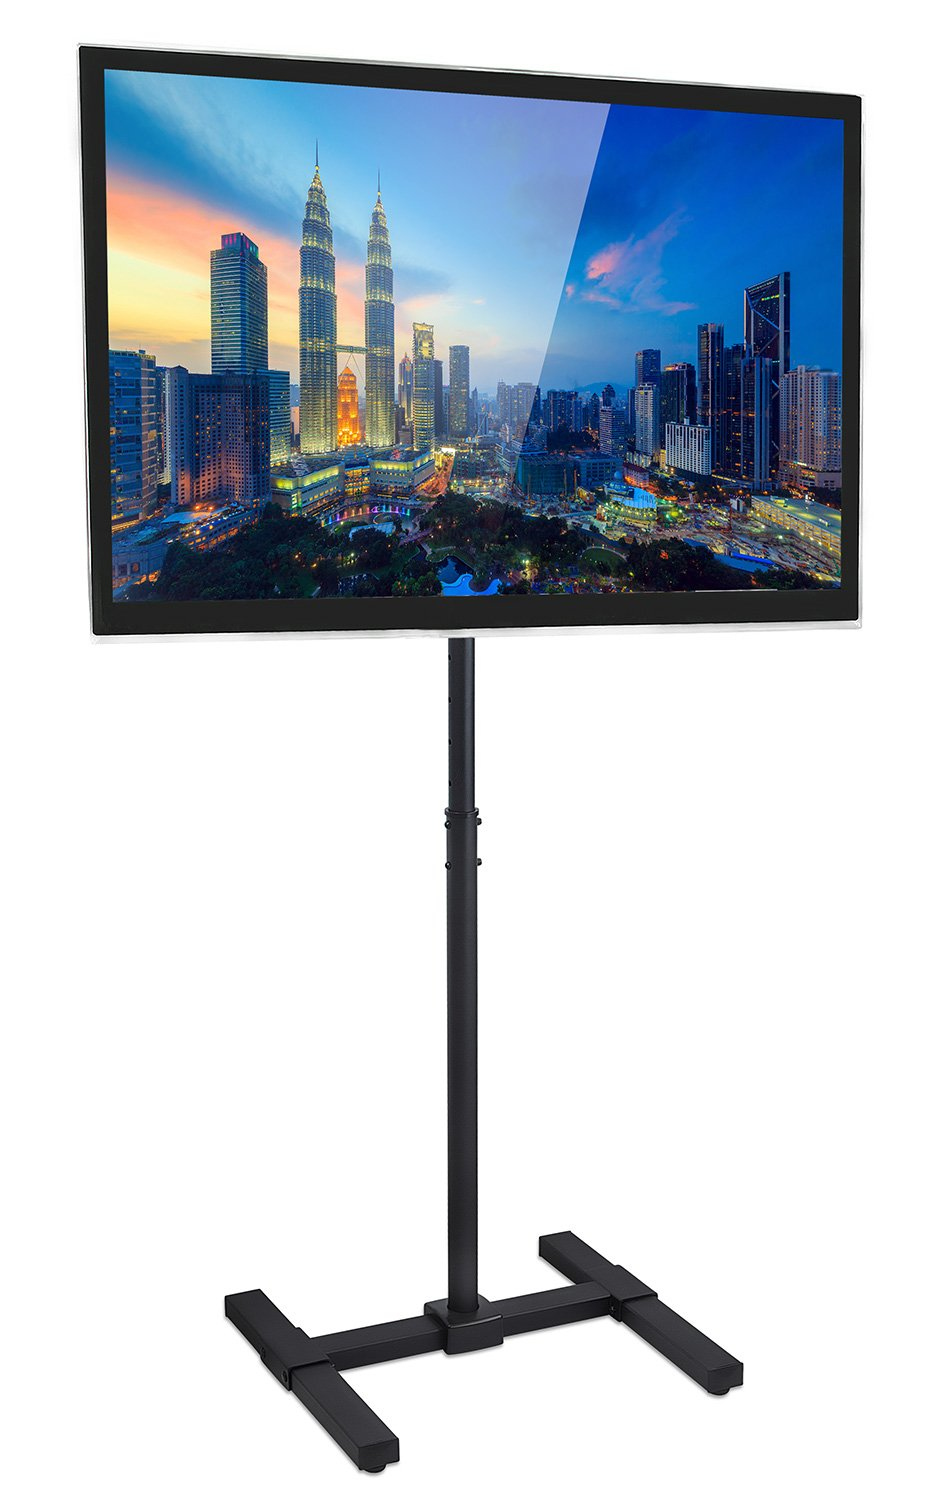 Portable TV Stand Floor Standing - Fits 27 30 32 35 37 40 and 42'' Televisions, Height Adjustable Telescoping Pole For Indoor and Outdoor Use, VESA 100 and 200, 44 Lbs